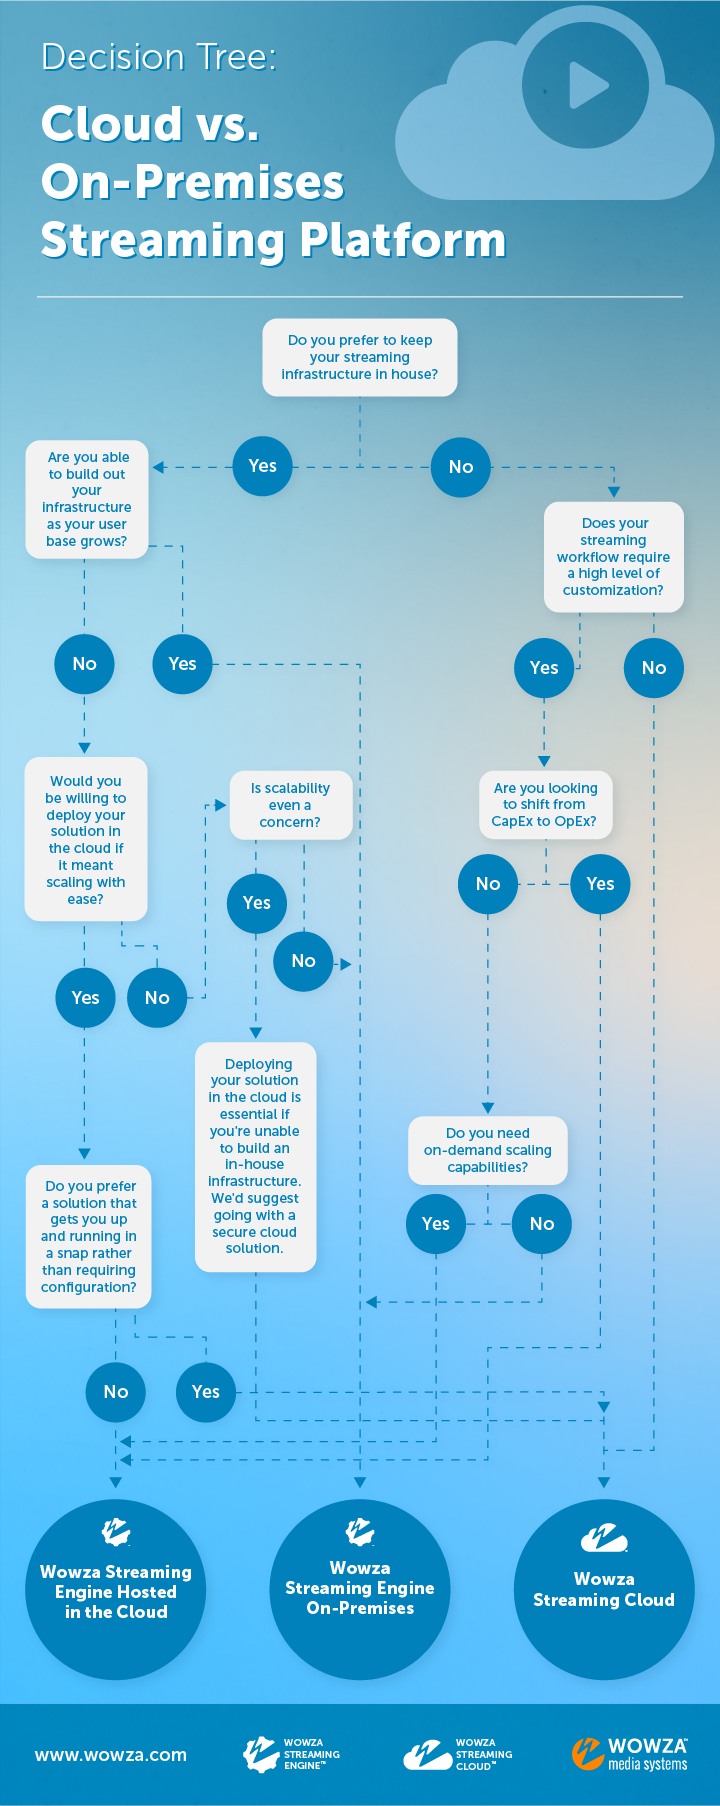 Decision Tree: Cloud vs. On-Premises Streaming